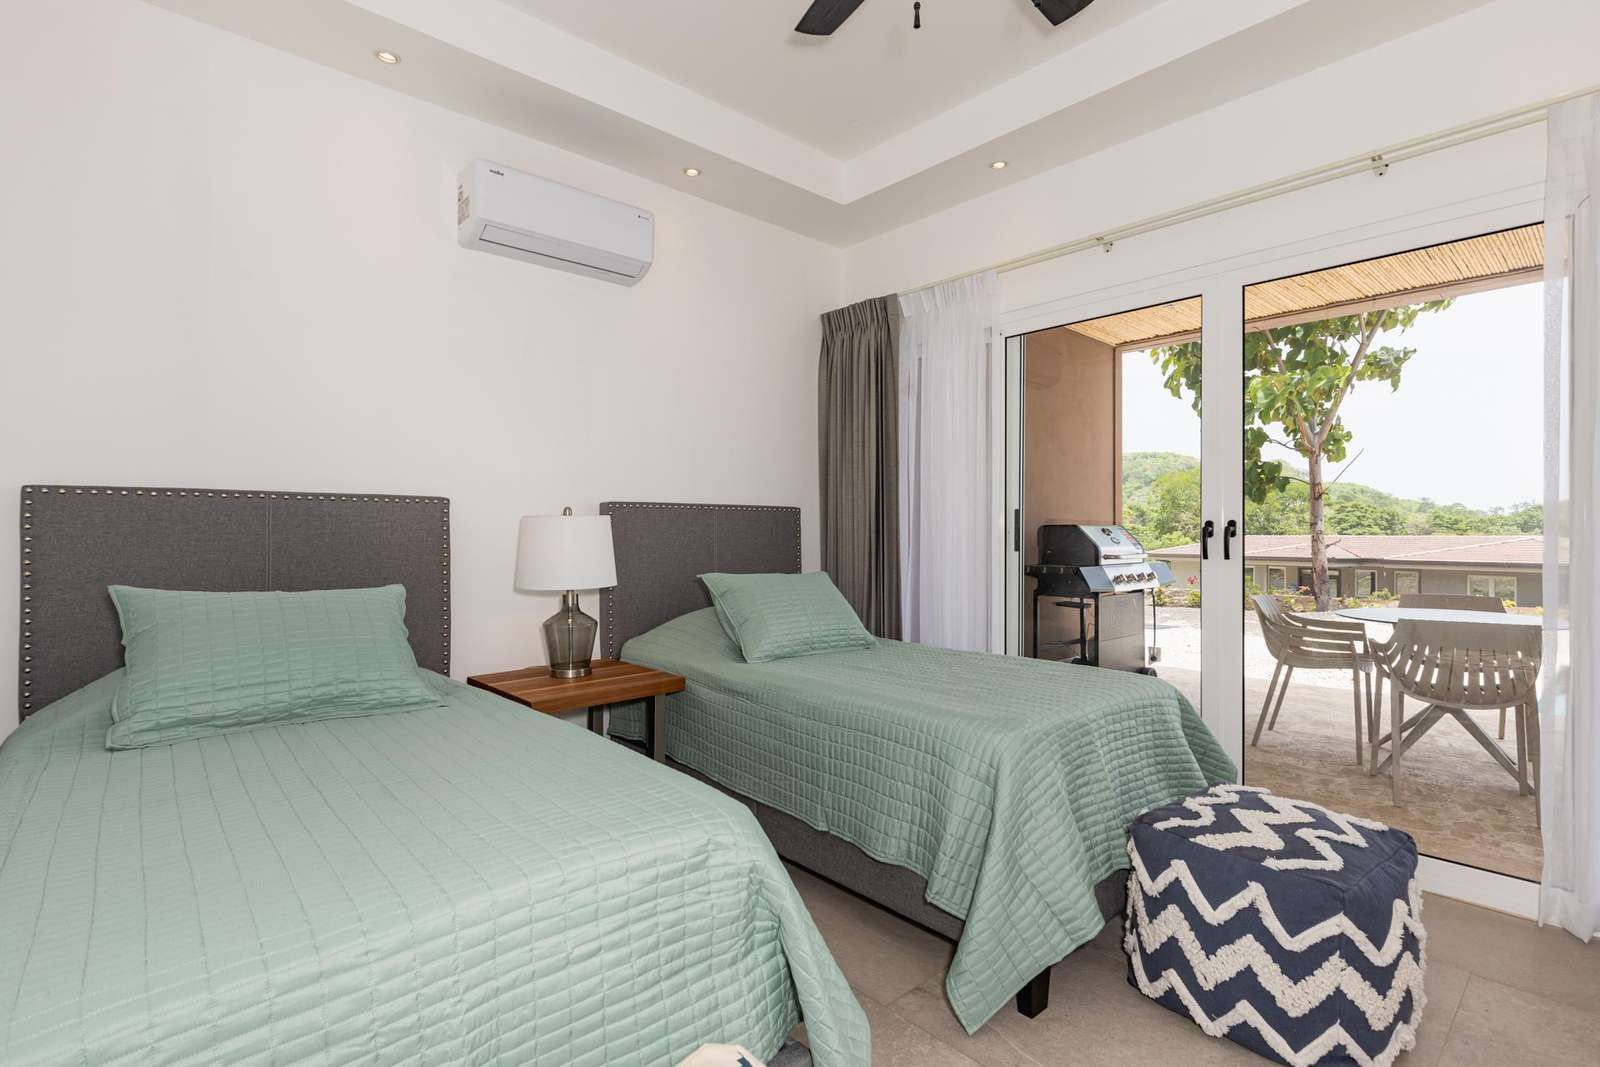 Guest bedroom, 2 twin beds, access to pool and terrace area